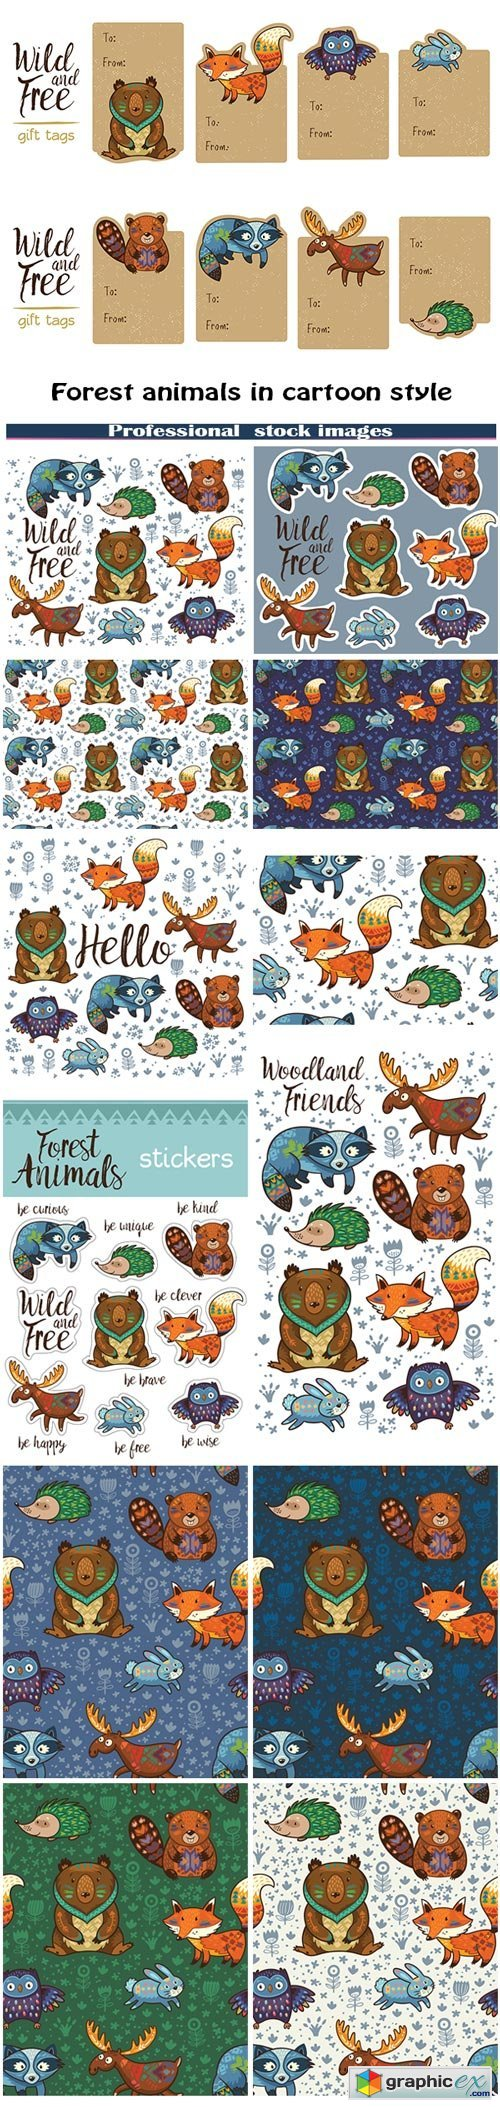 Forest animals in cartoon style